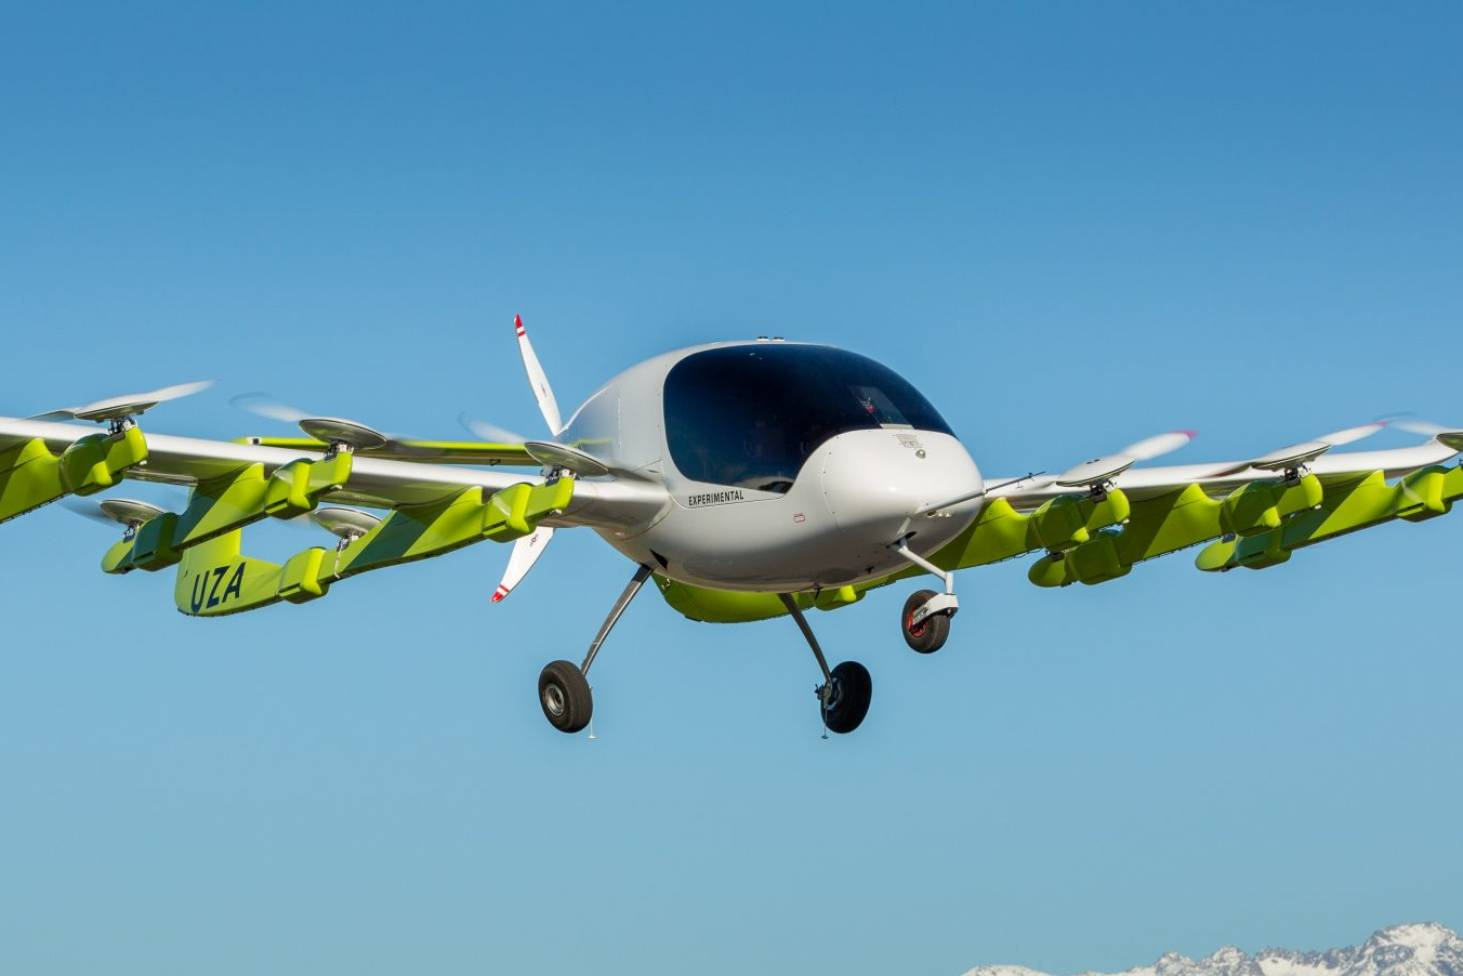 Air taxi trials possible in six years as tech company trials flying